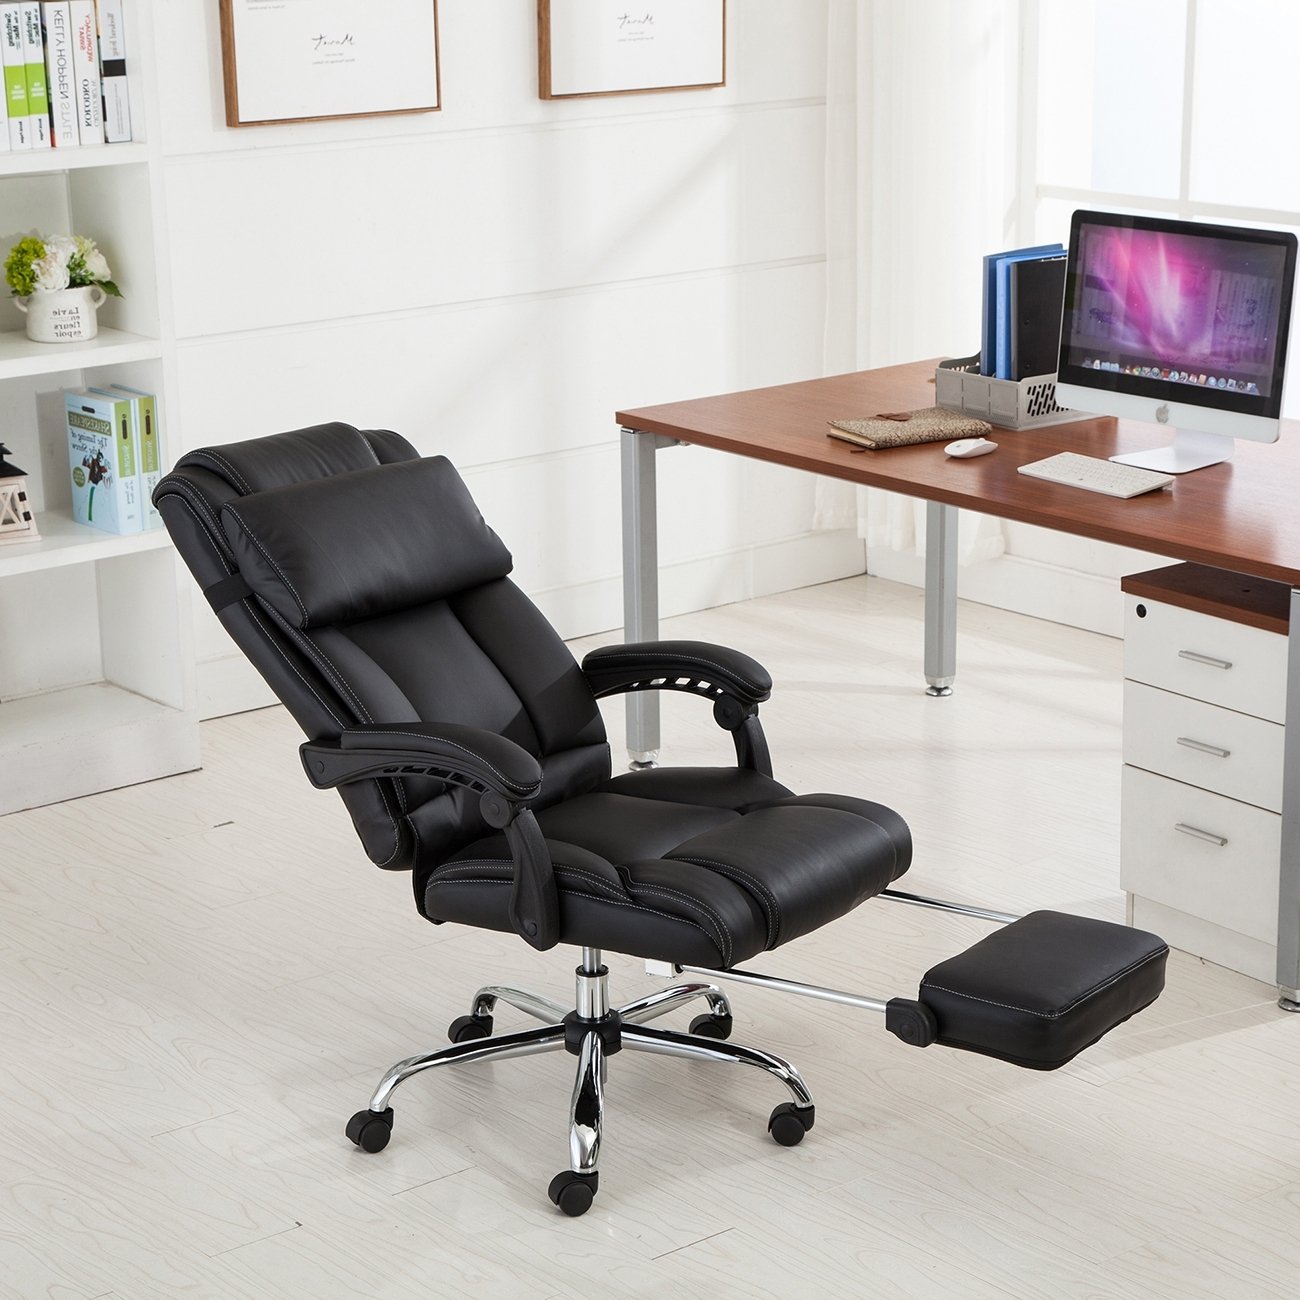 Belleze Executive Reclining Office Chair High Back W/ Footrest With 2018 Executive Reclining Office Chairs (View 2 of 20)